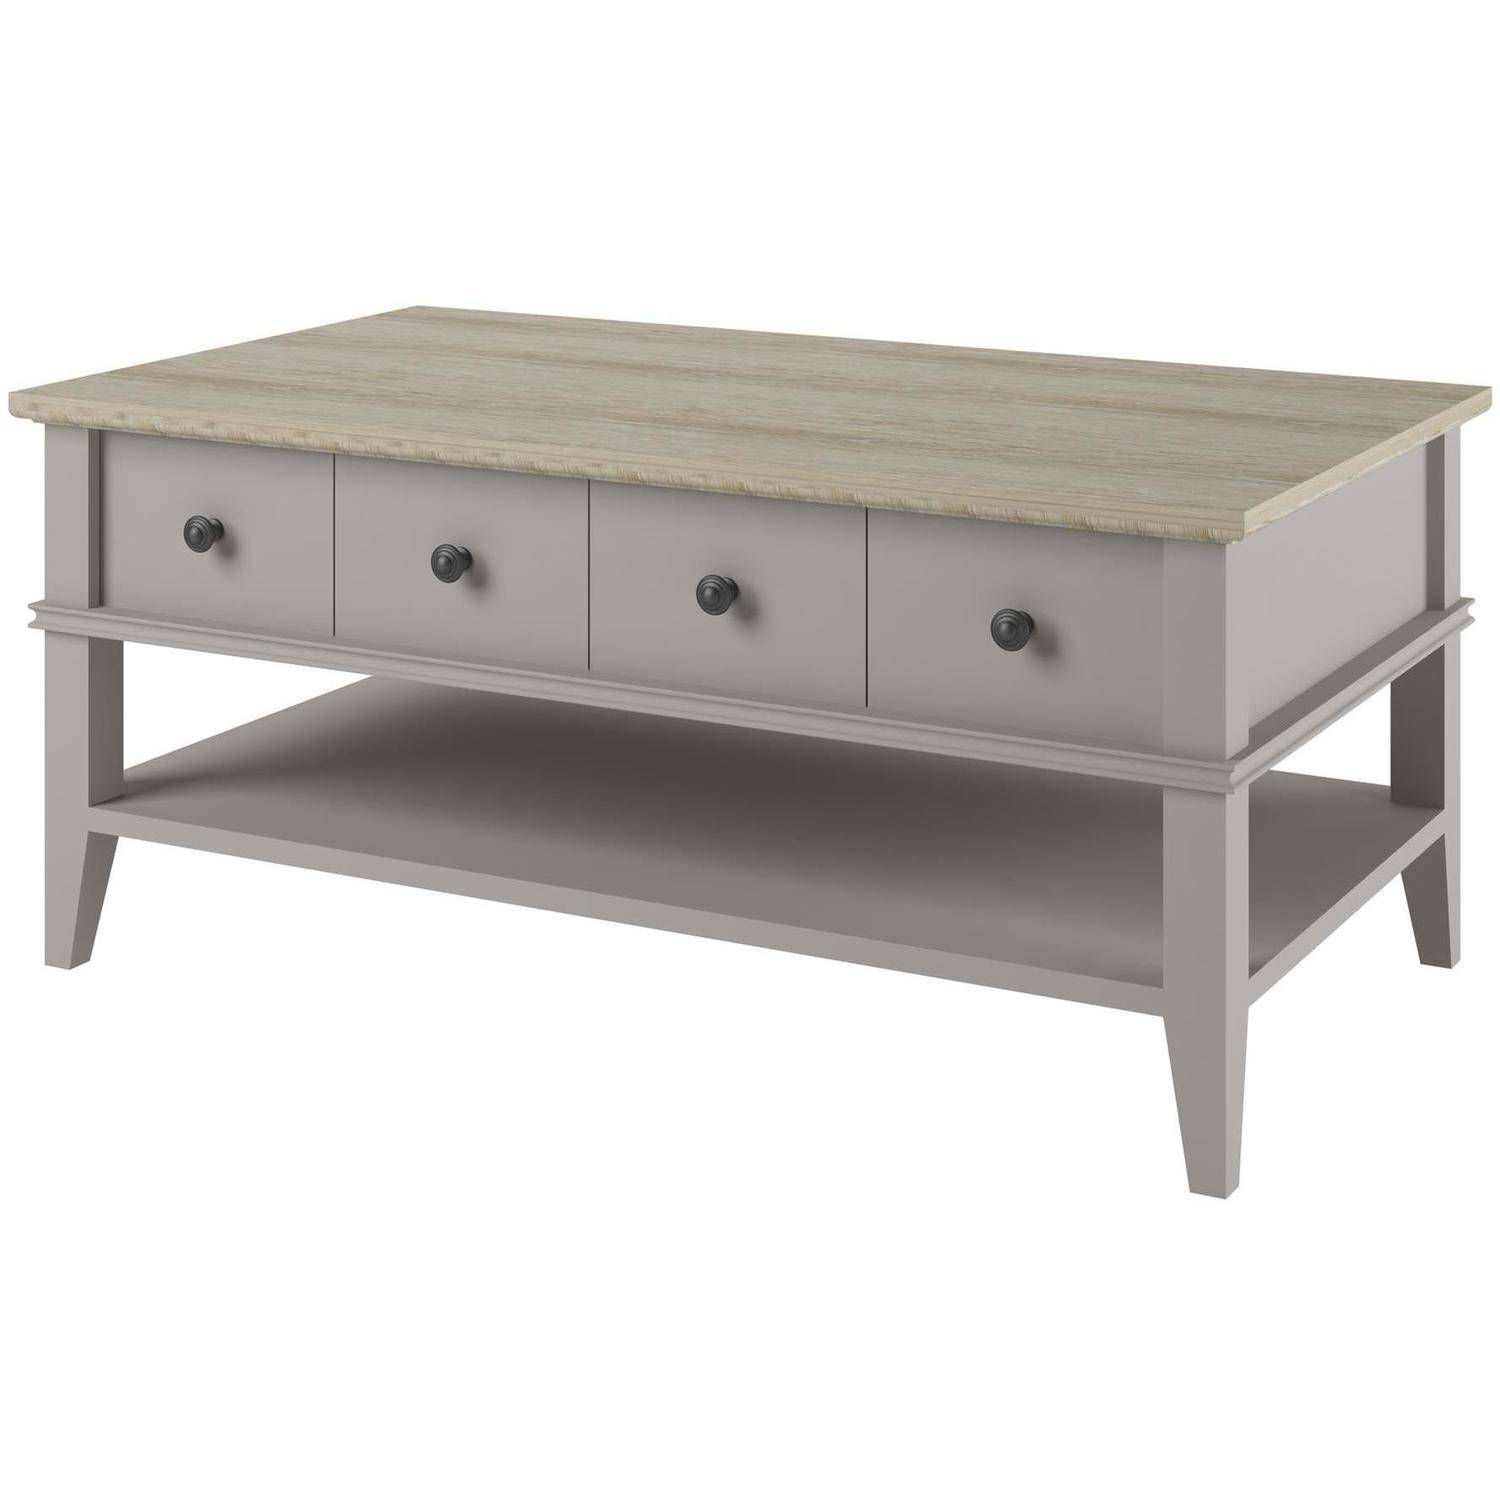 Ameriwood Home Newport Coffee Table, Light Gray/light Brown pertaining to Grey Coffee Tables (Image 4 of 30)